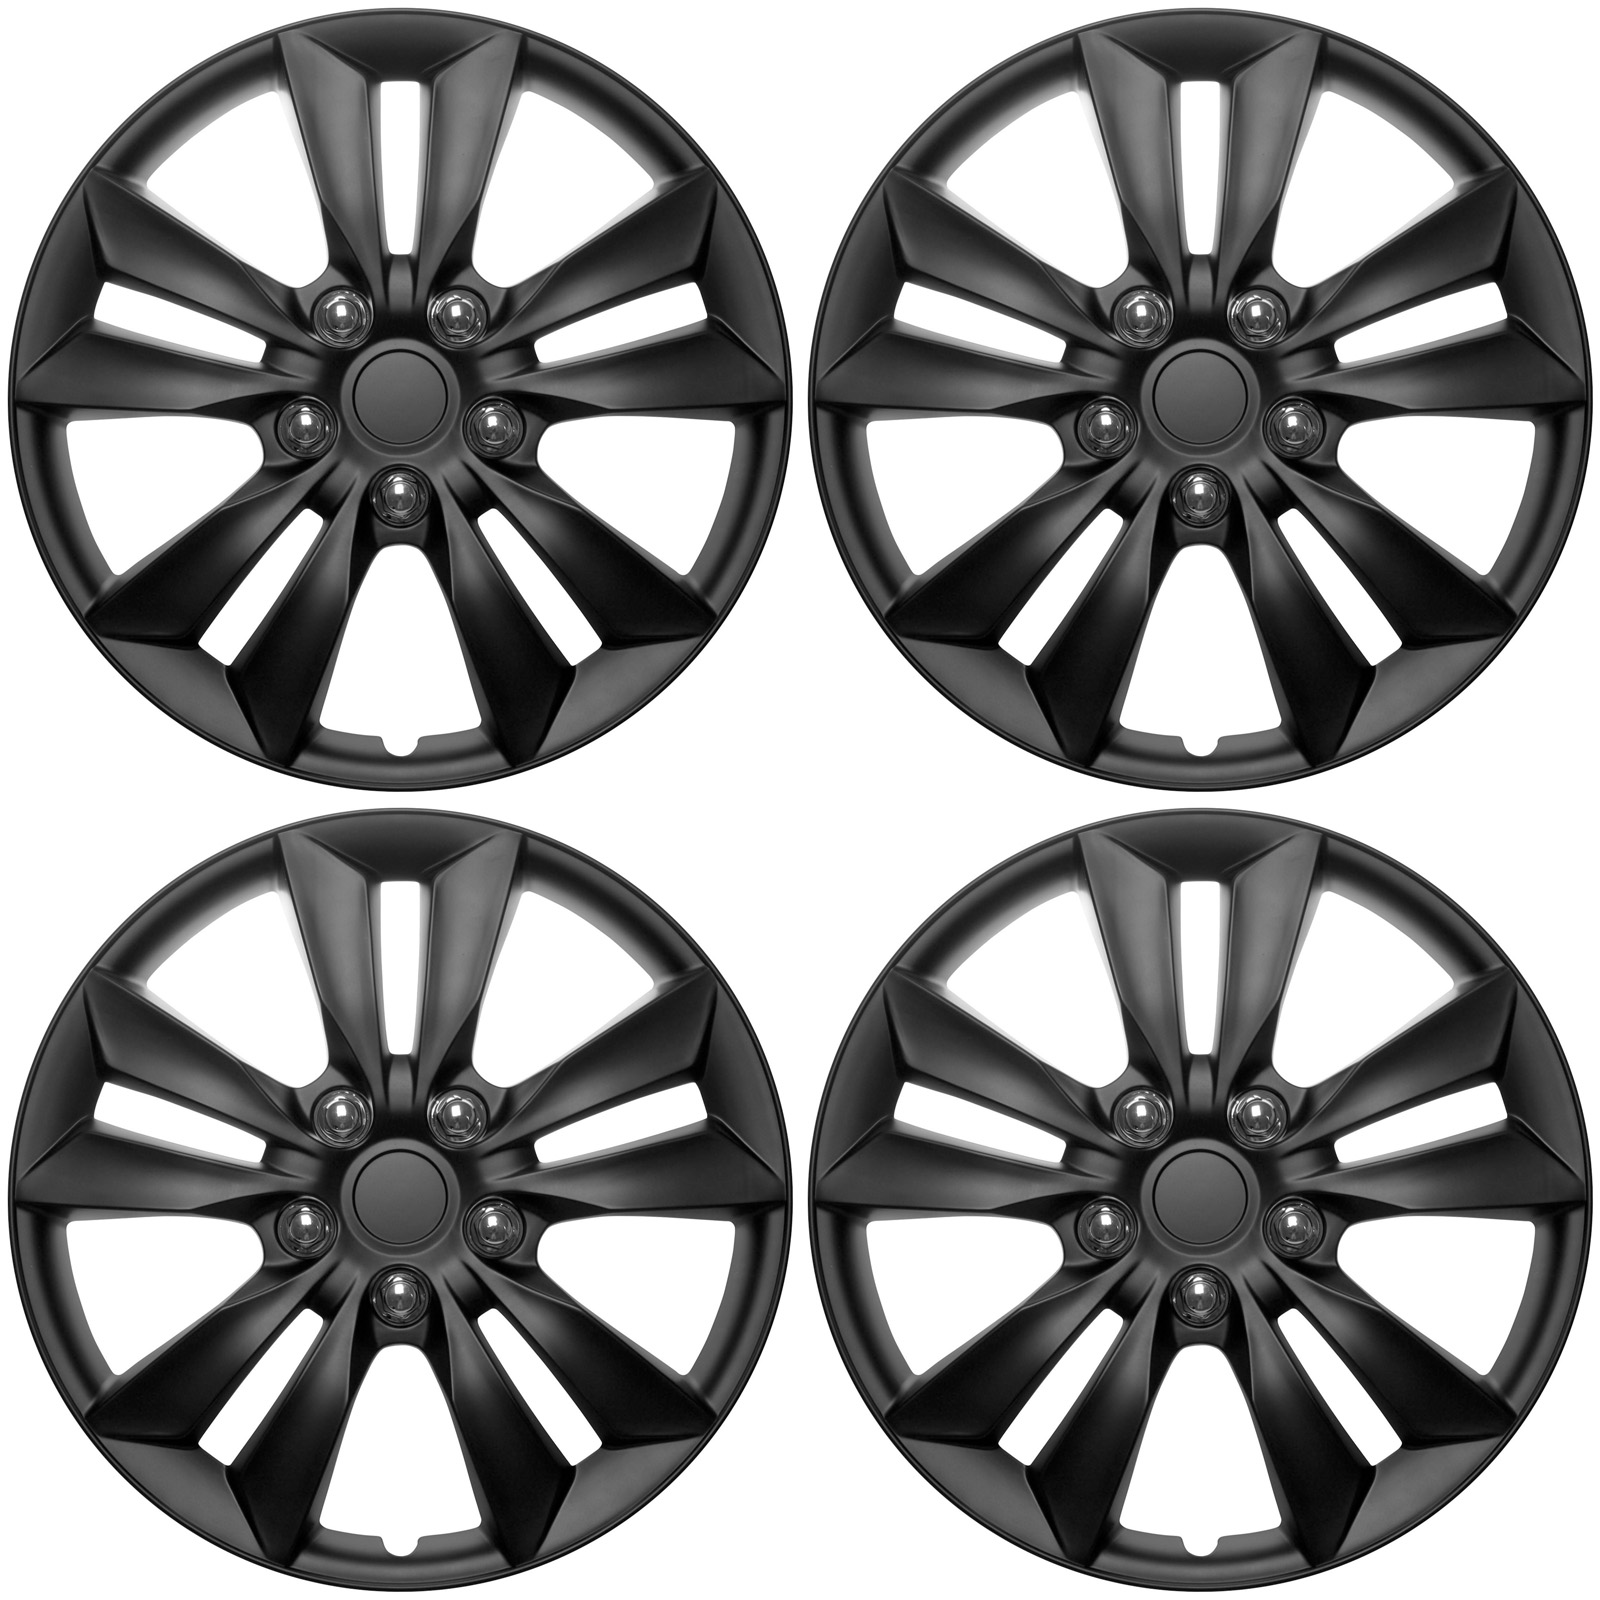 Set of 4 Upgrade Your Auto 17 Matte Black Hubcaps//Wheel Covers for Steel Wheels Rogue Style